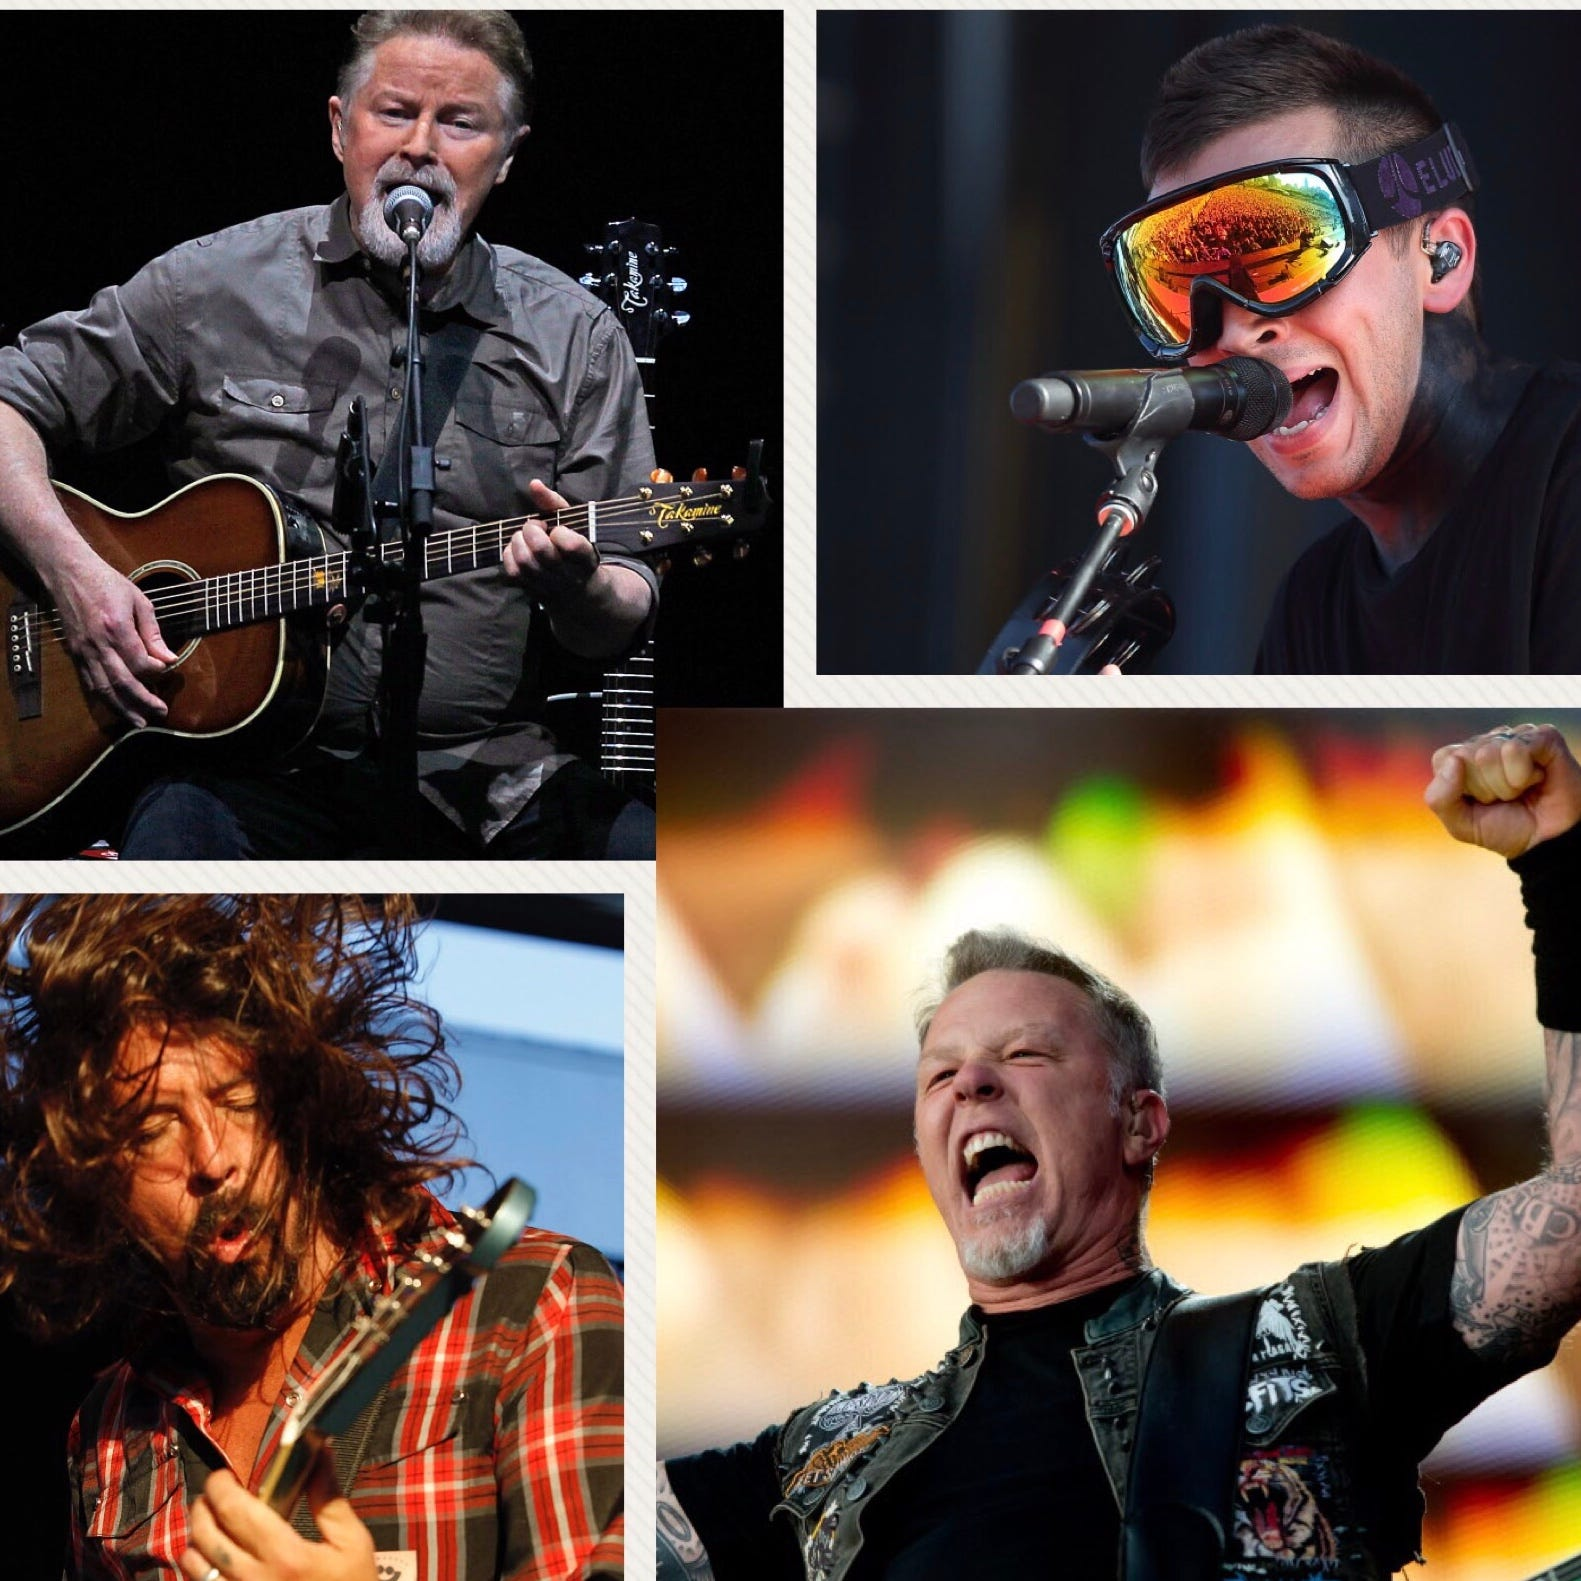 With Metallica, Foo Fighters, Eagles and the Bucks opener, we've never had a week like this